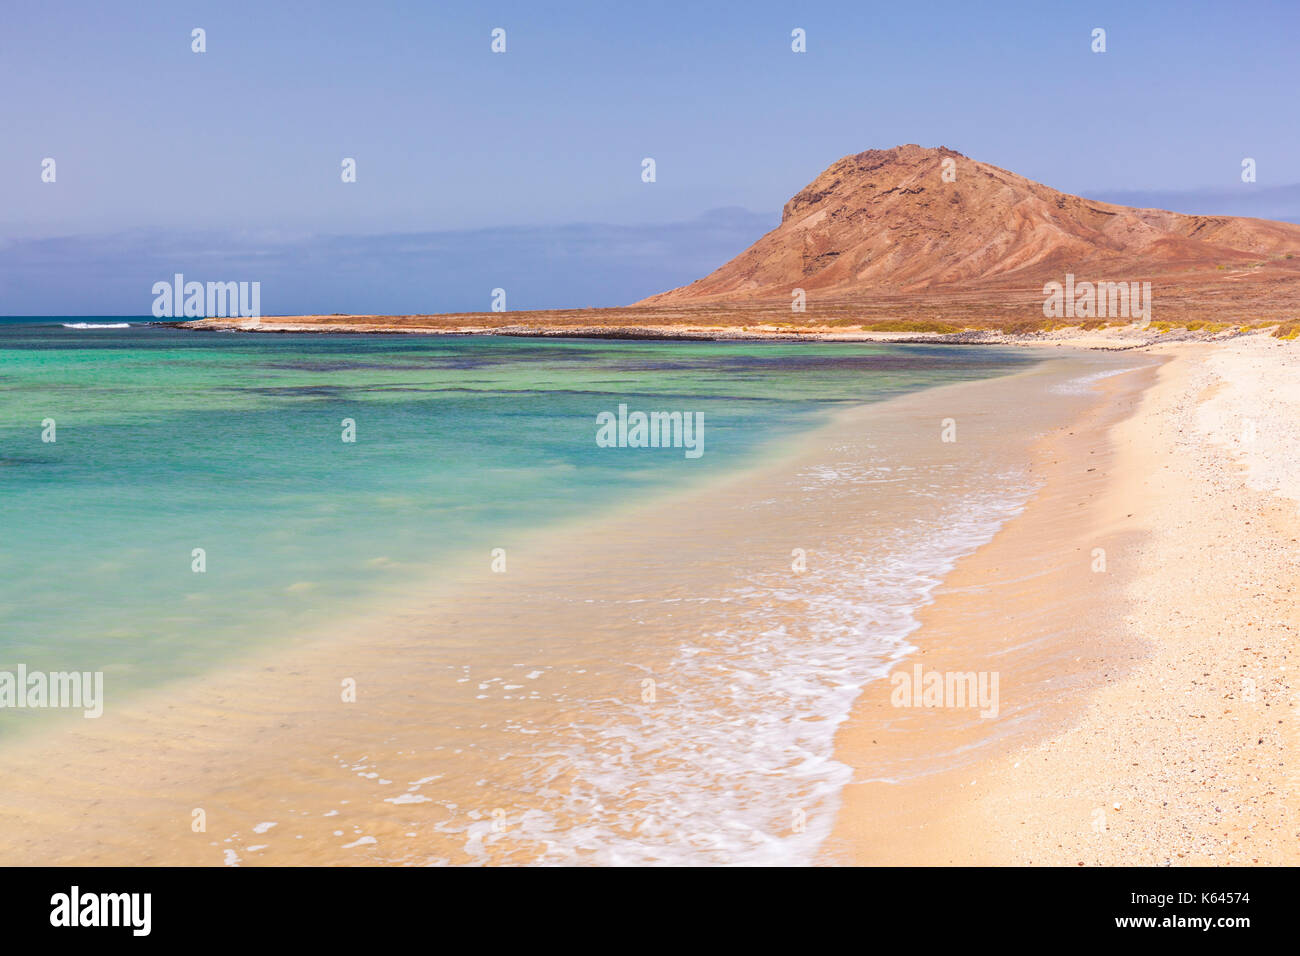 CAPE VERDE SAL Empty sandy beach and bay near Monte Leao mountain (Sleeping Lion mountain), Sal Island, Cape Verde, Atlantic, Africa - Stock Image